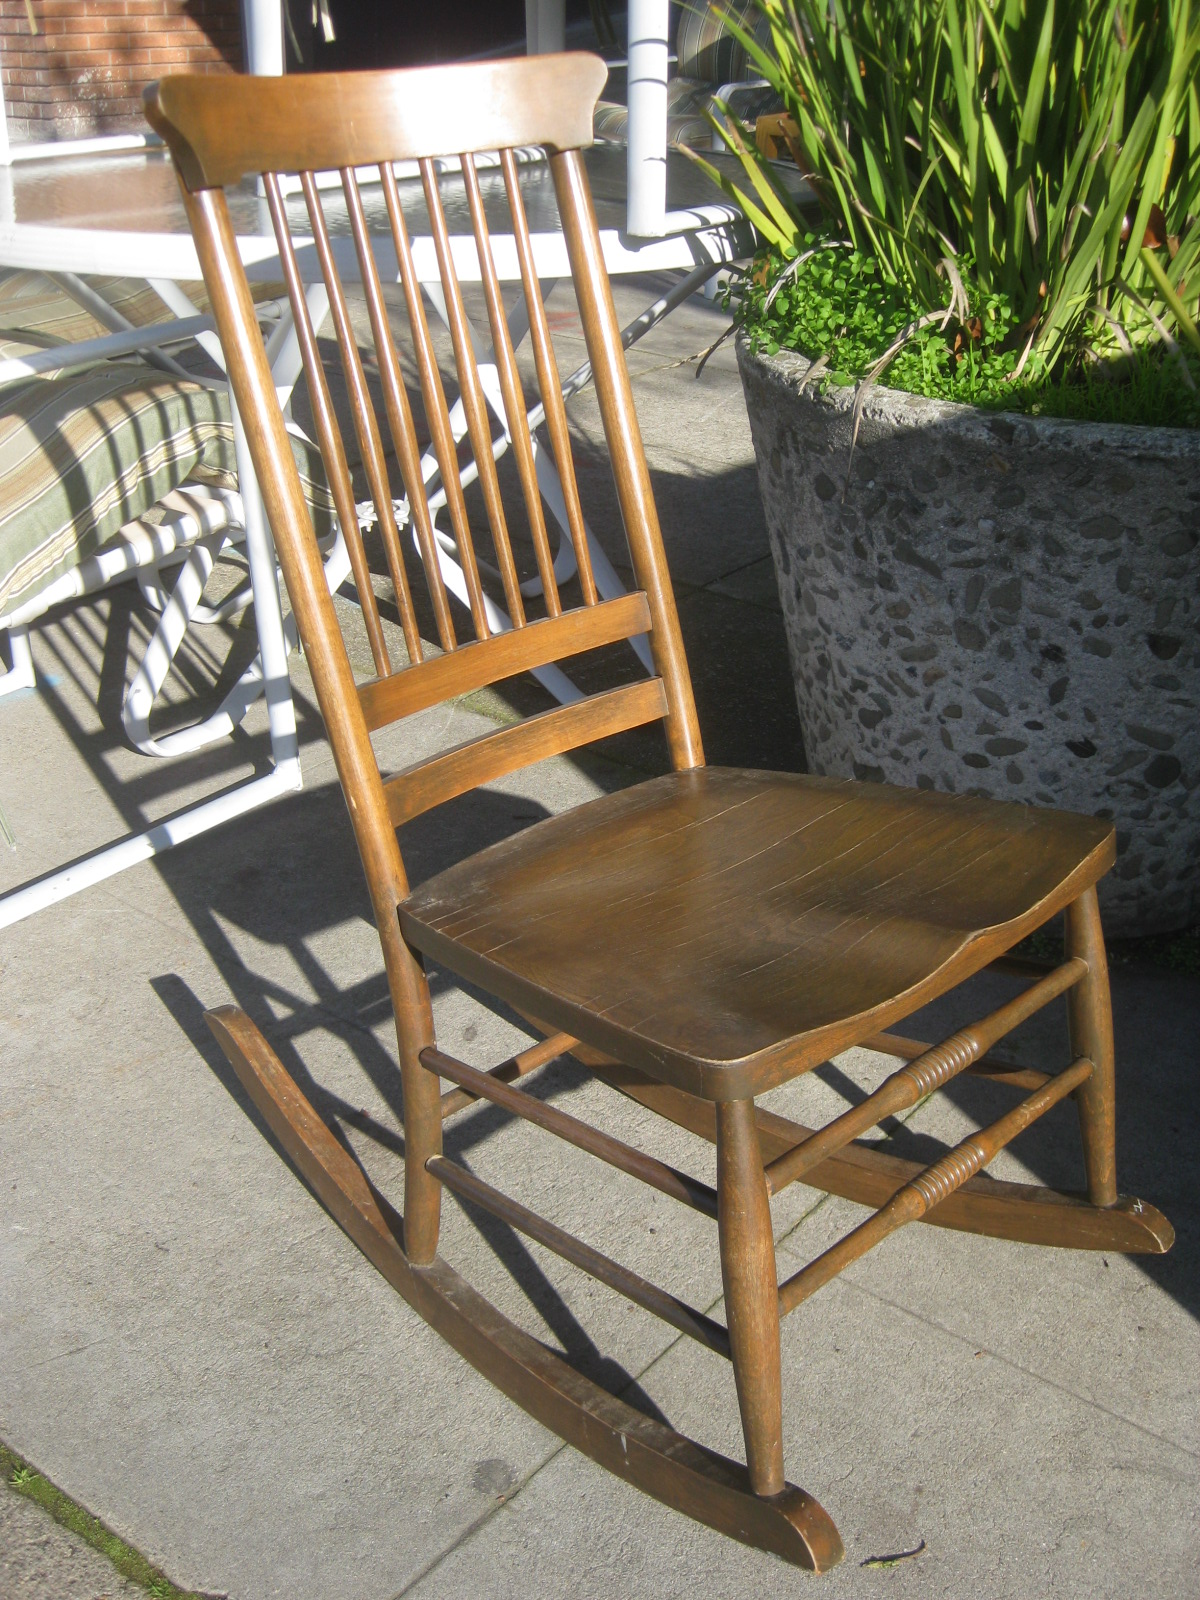 Rocking Chair For Outside, Rocking Chair For Patio, Rocking Chair For ...